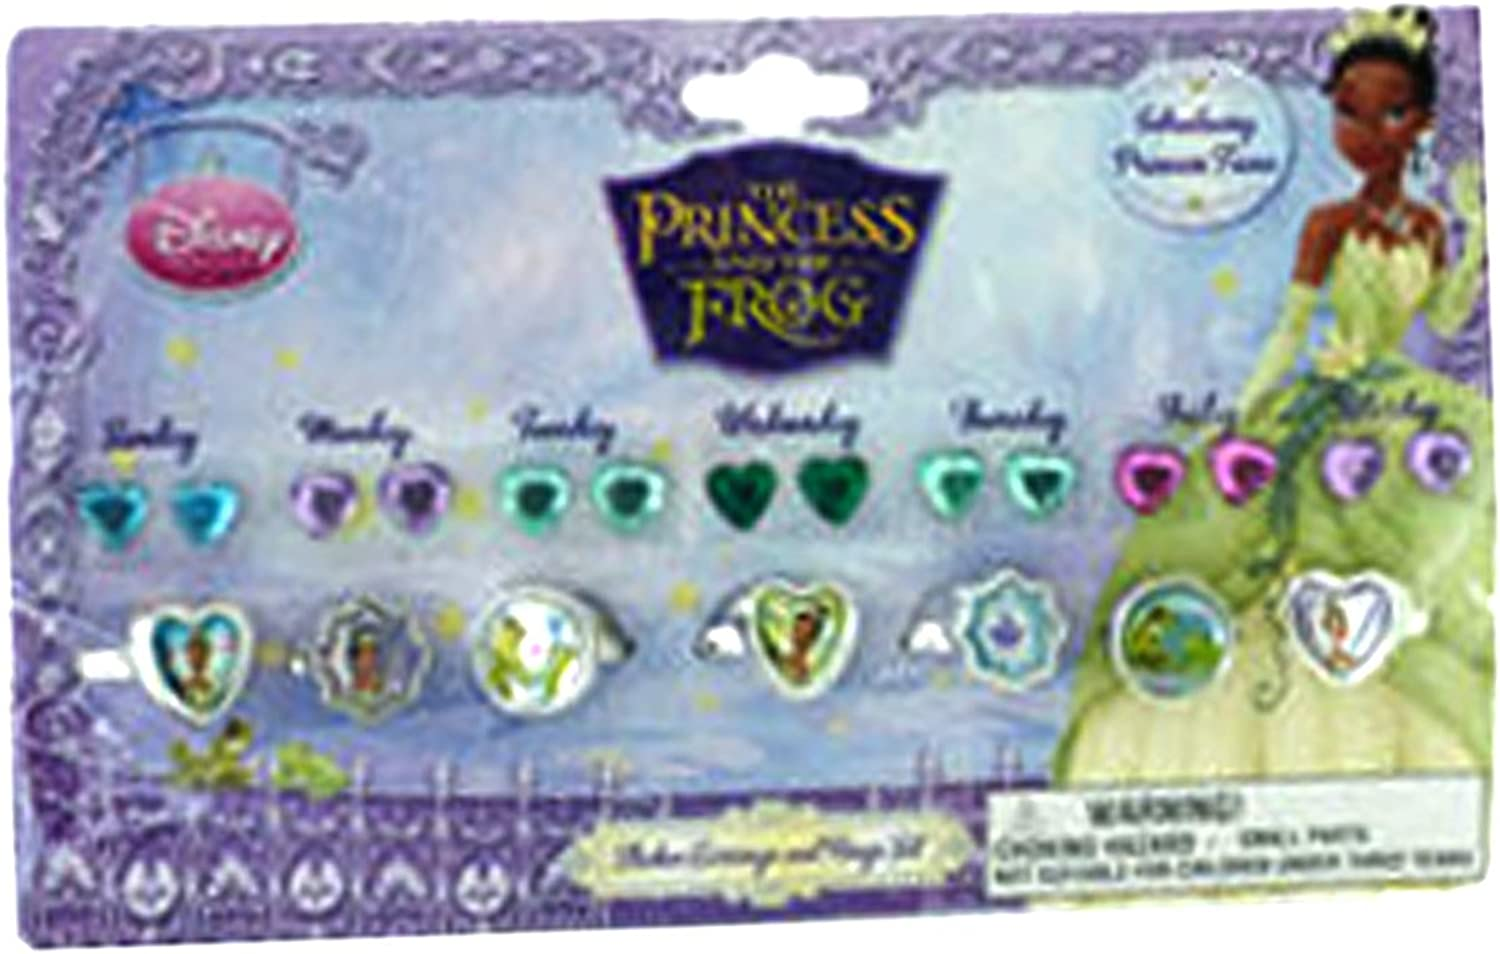 Princess and the Frog Rings and Earrings Set - 7 Day Ring Set [Toy]